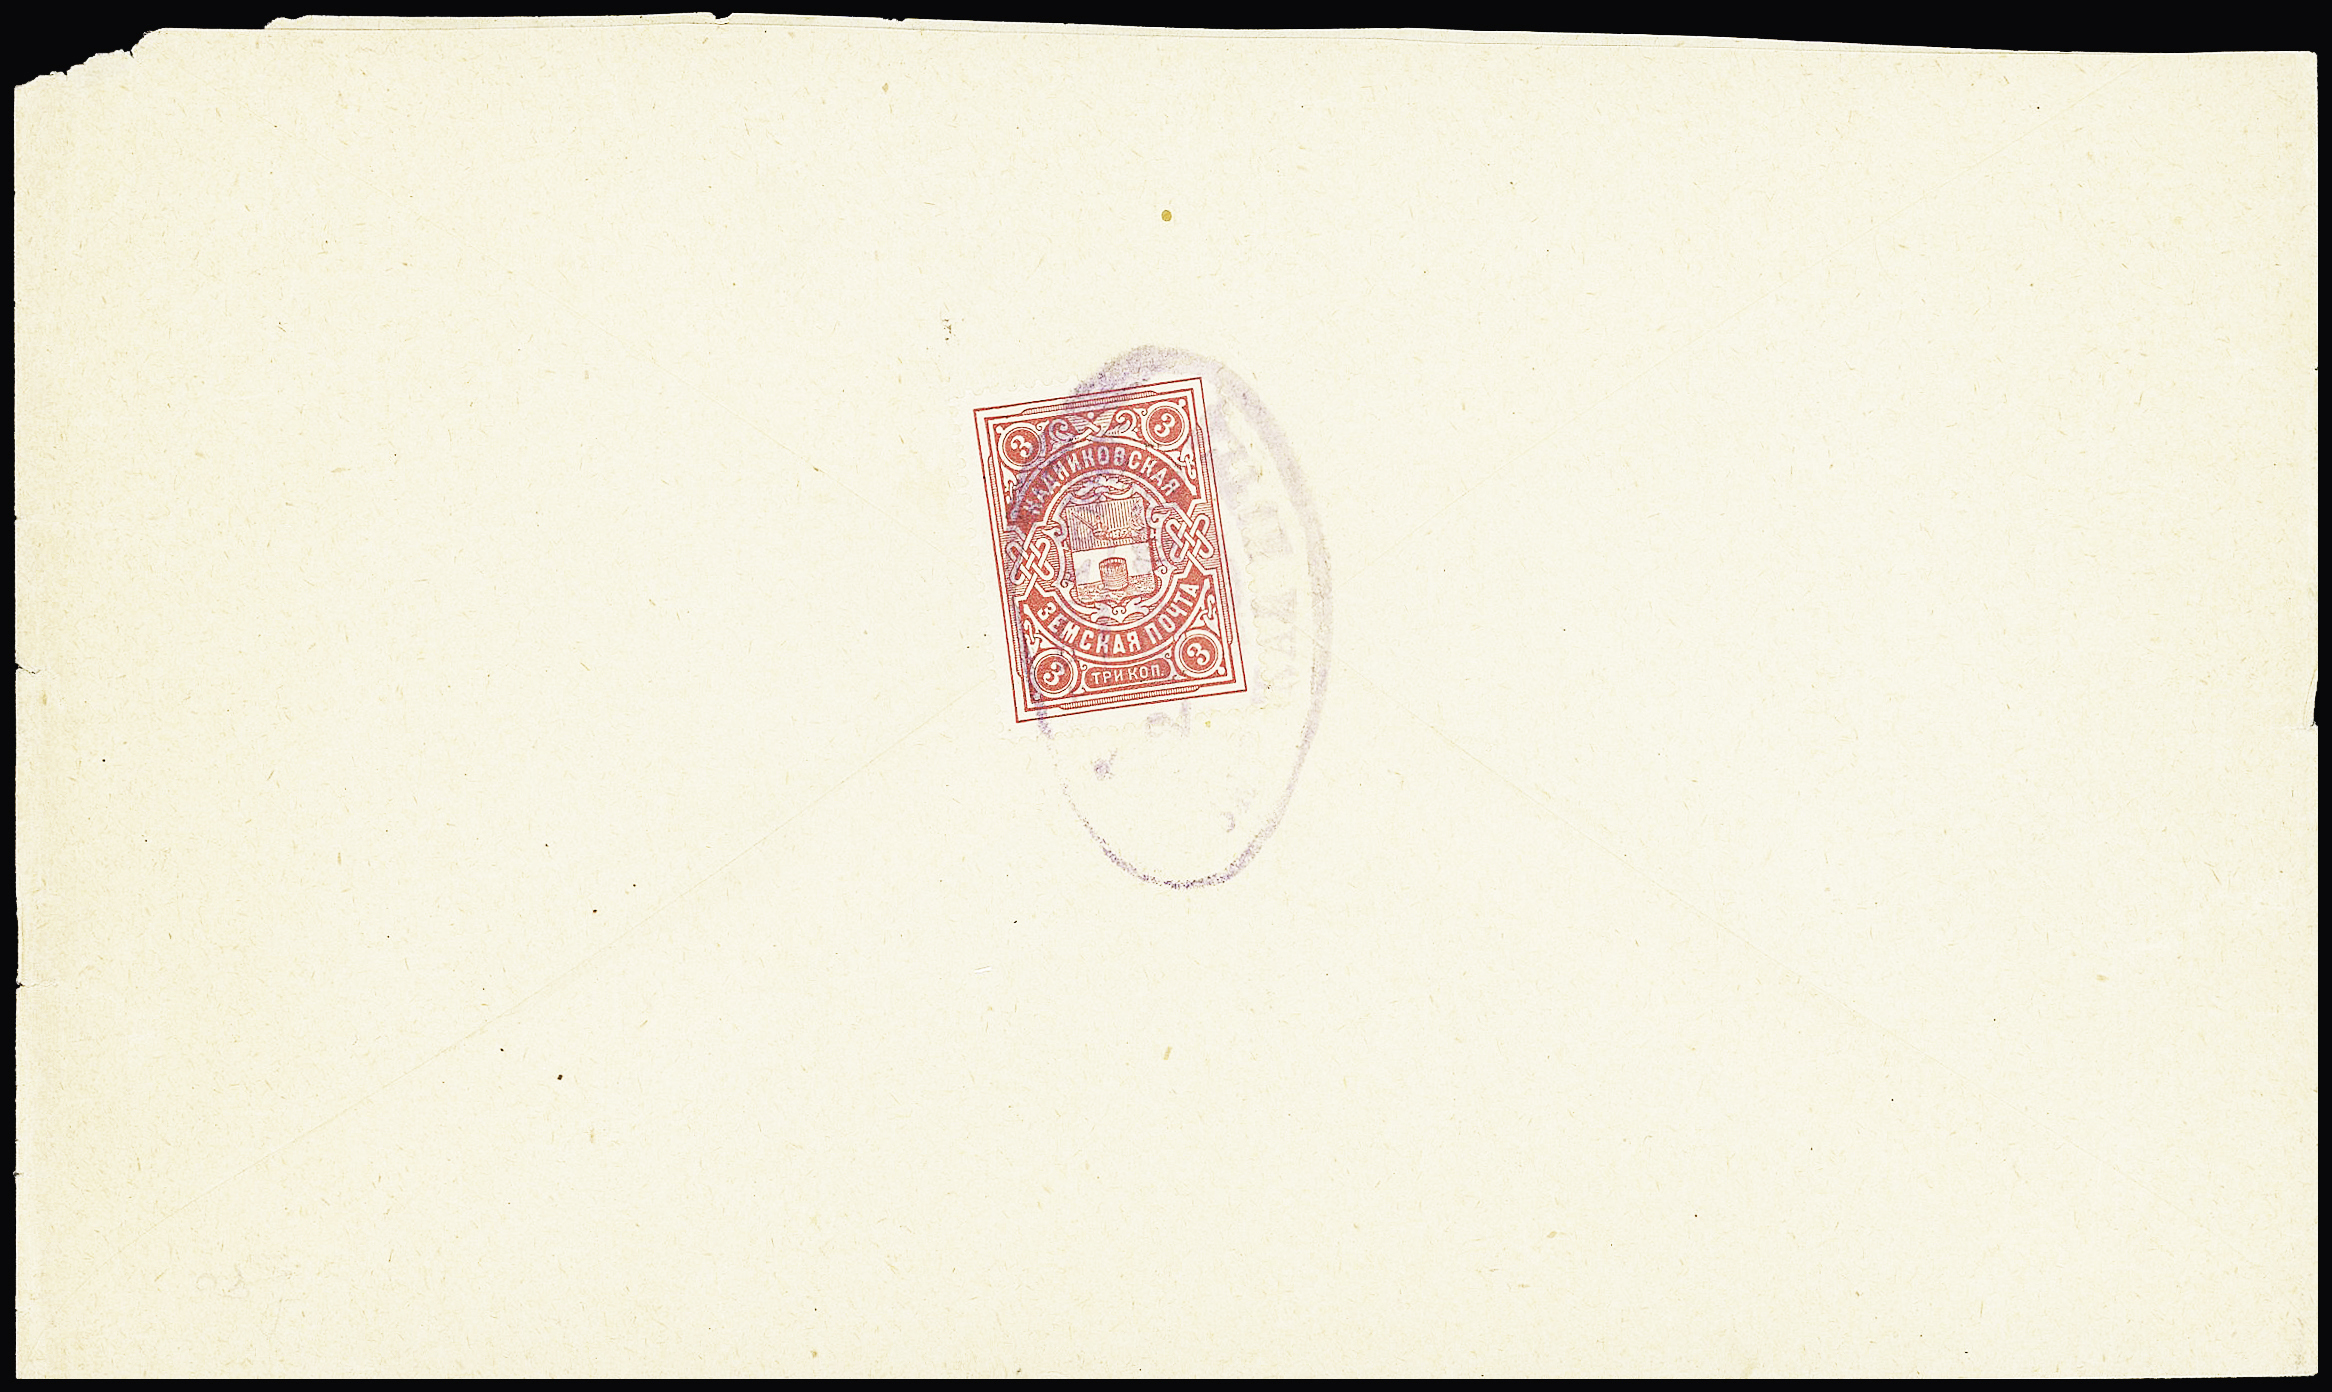 Lot 464 - Eastern Europe » RUSSIA - ZEMSTVOS » Kadnikov (Vologda Government)  -  Le Timbre Classique SA SALE ON OFFERS N ° 37 PARIS